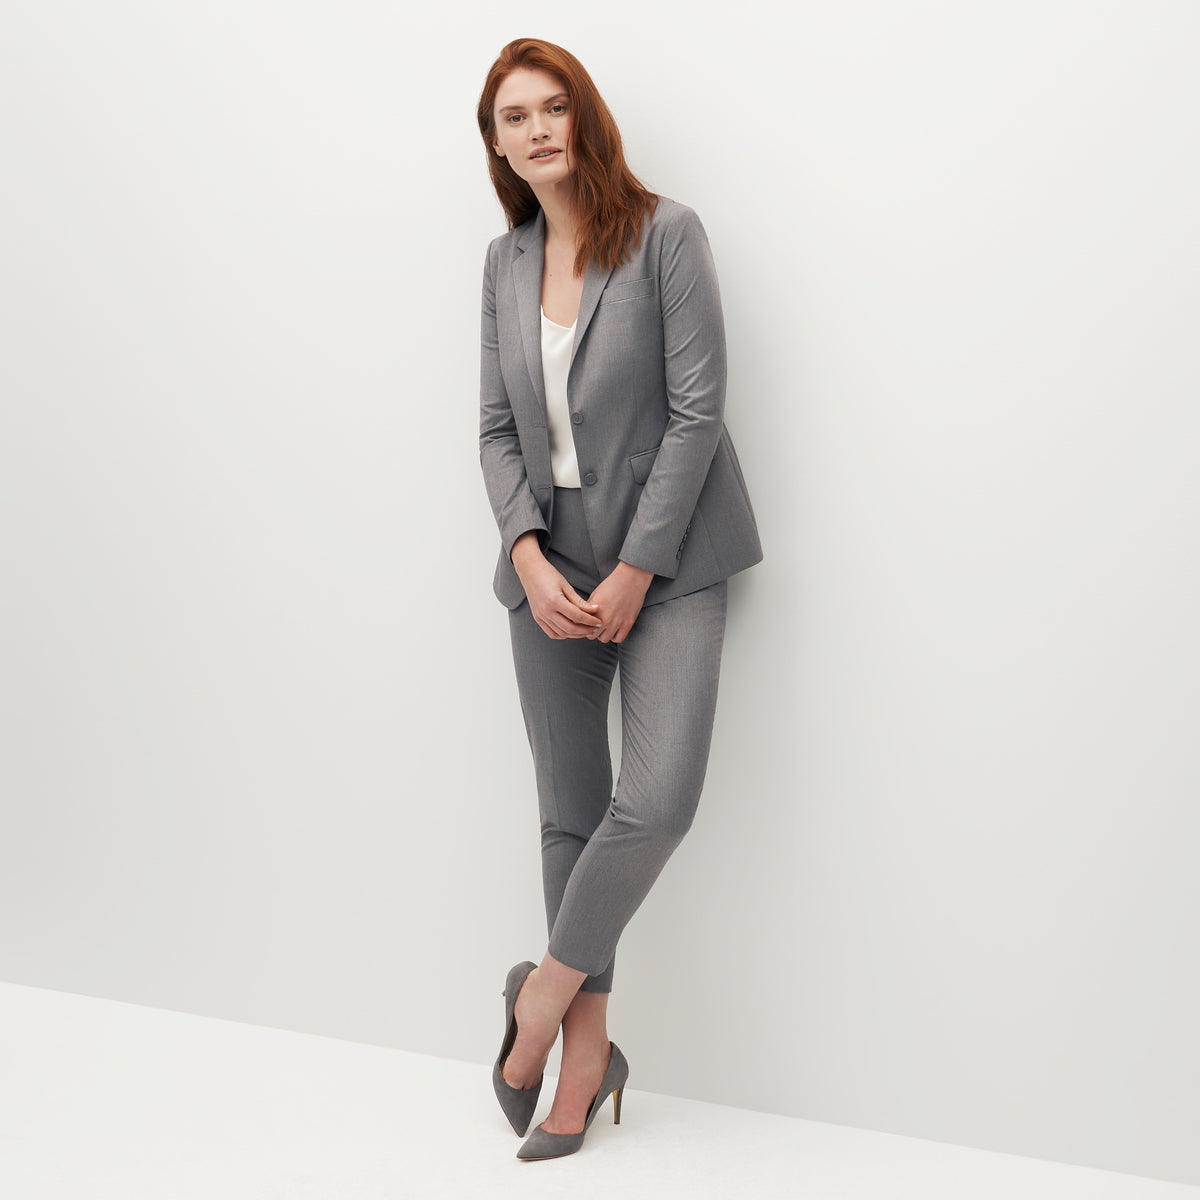 Women's Textured Gray Suit Jacket